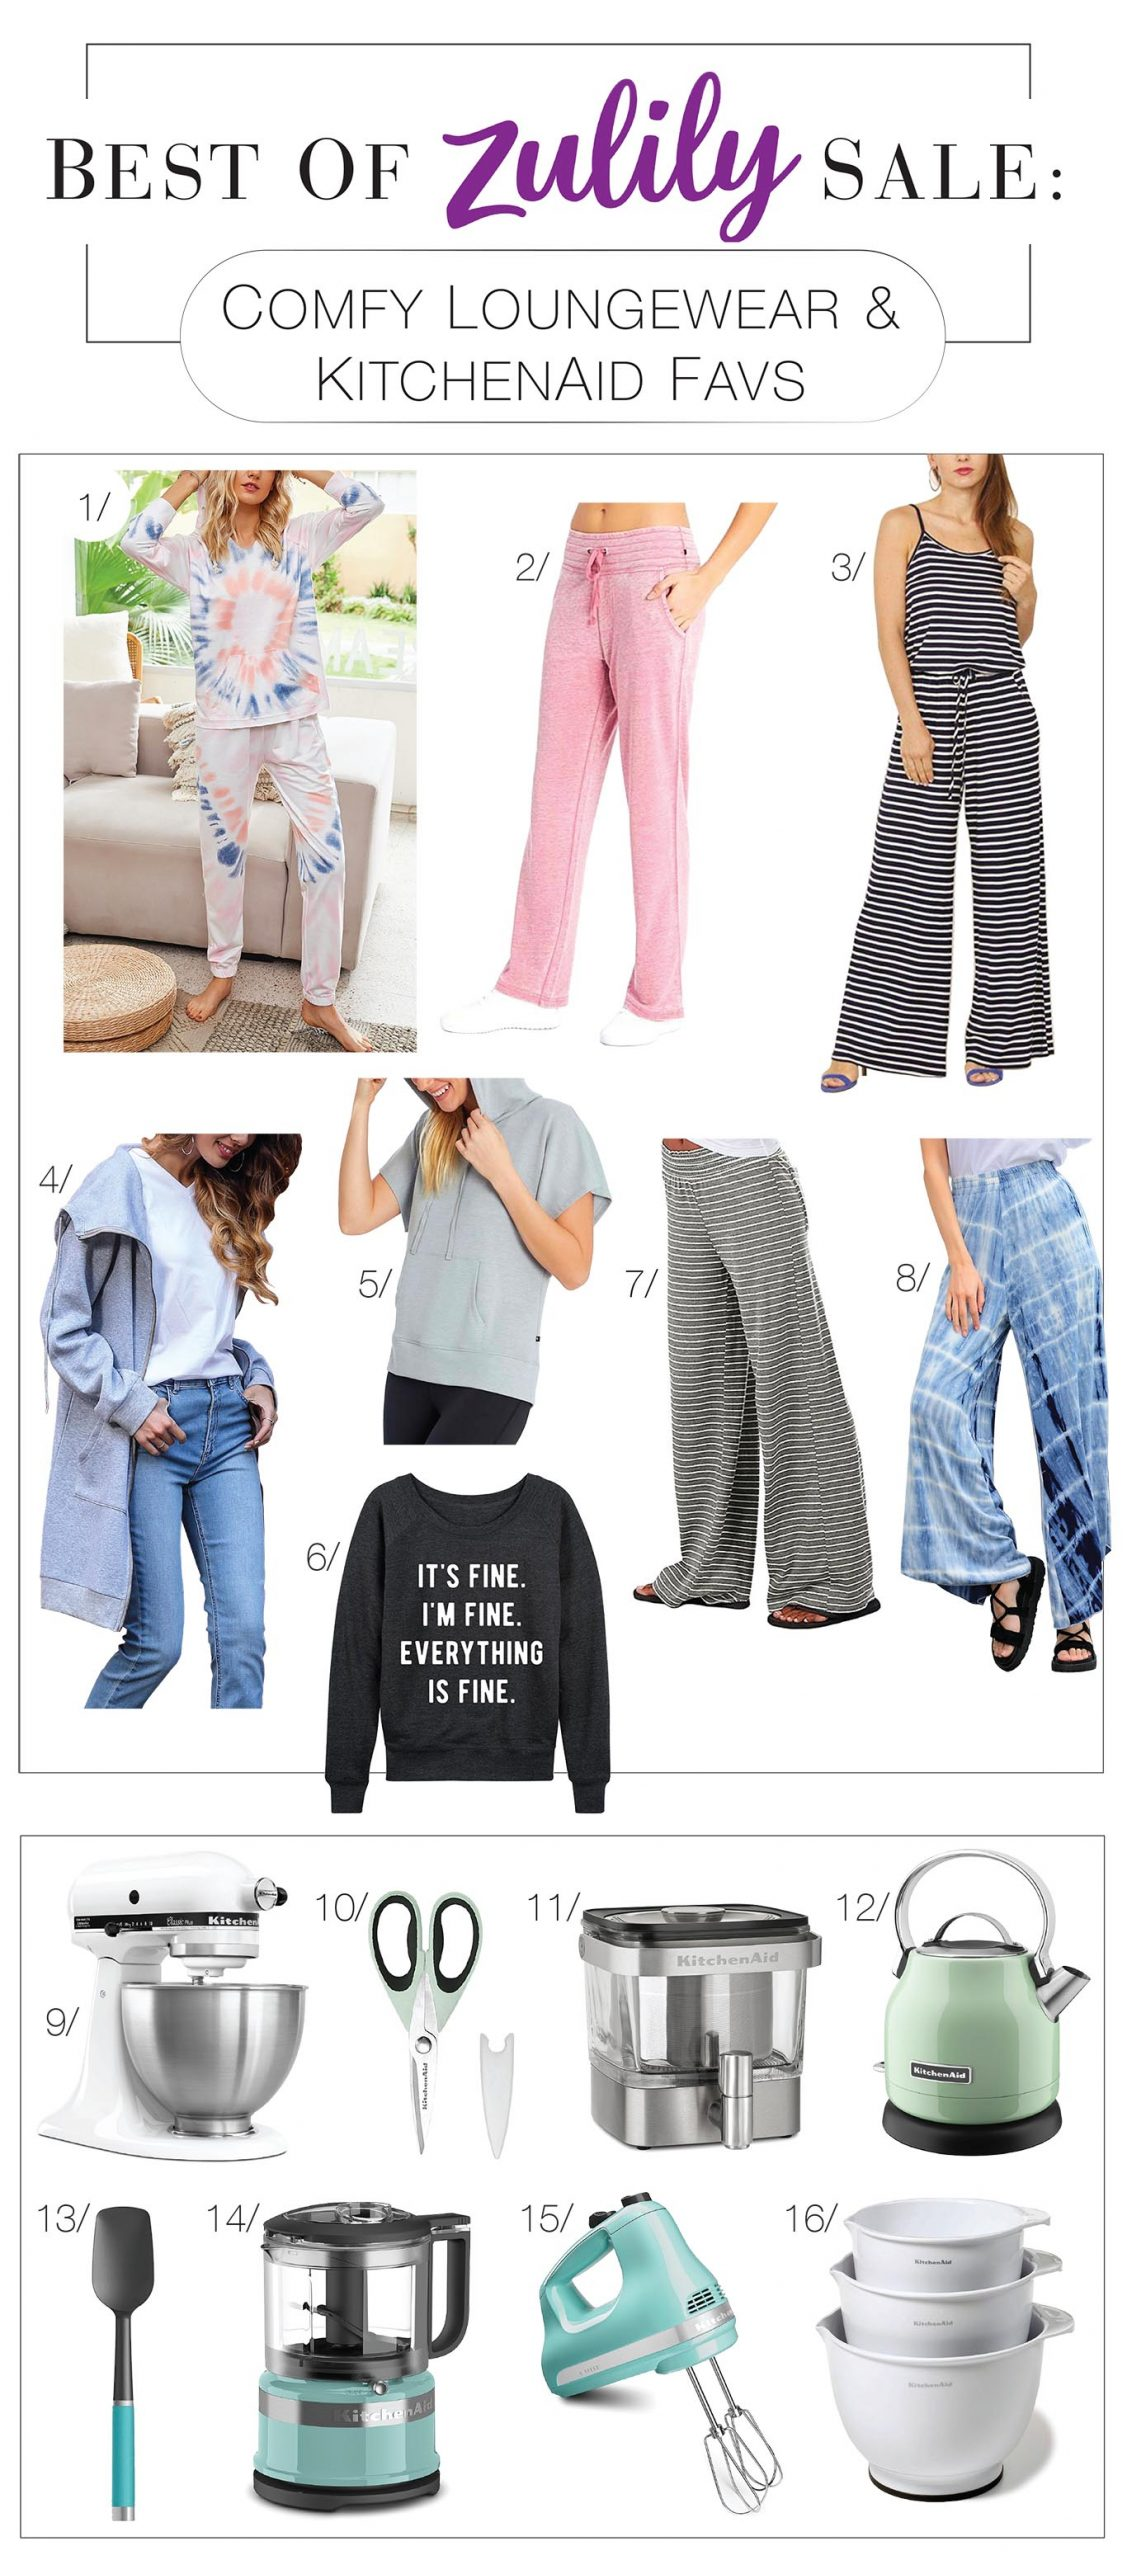 All we need for baking cake & eating it too (cute loungewear AND quality kitchen appliances (think KitchenAid)) is on Zulily! Snap up a tie-dye sweatsuit!